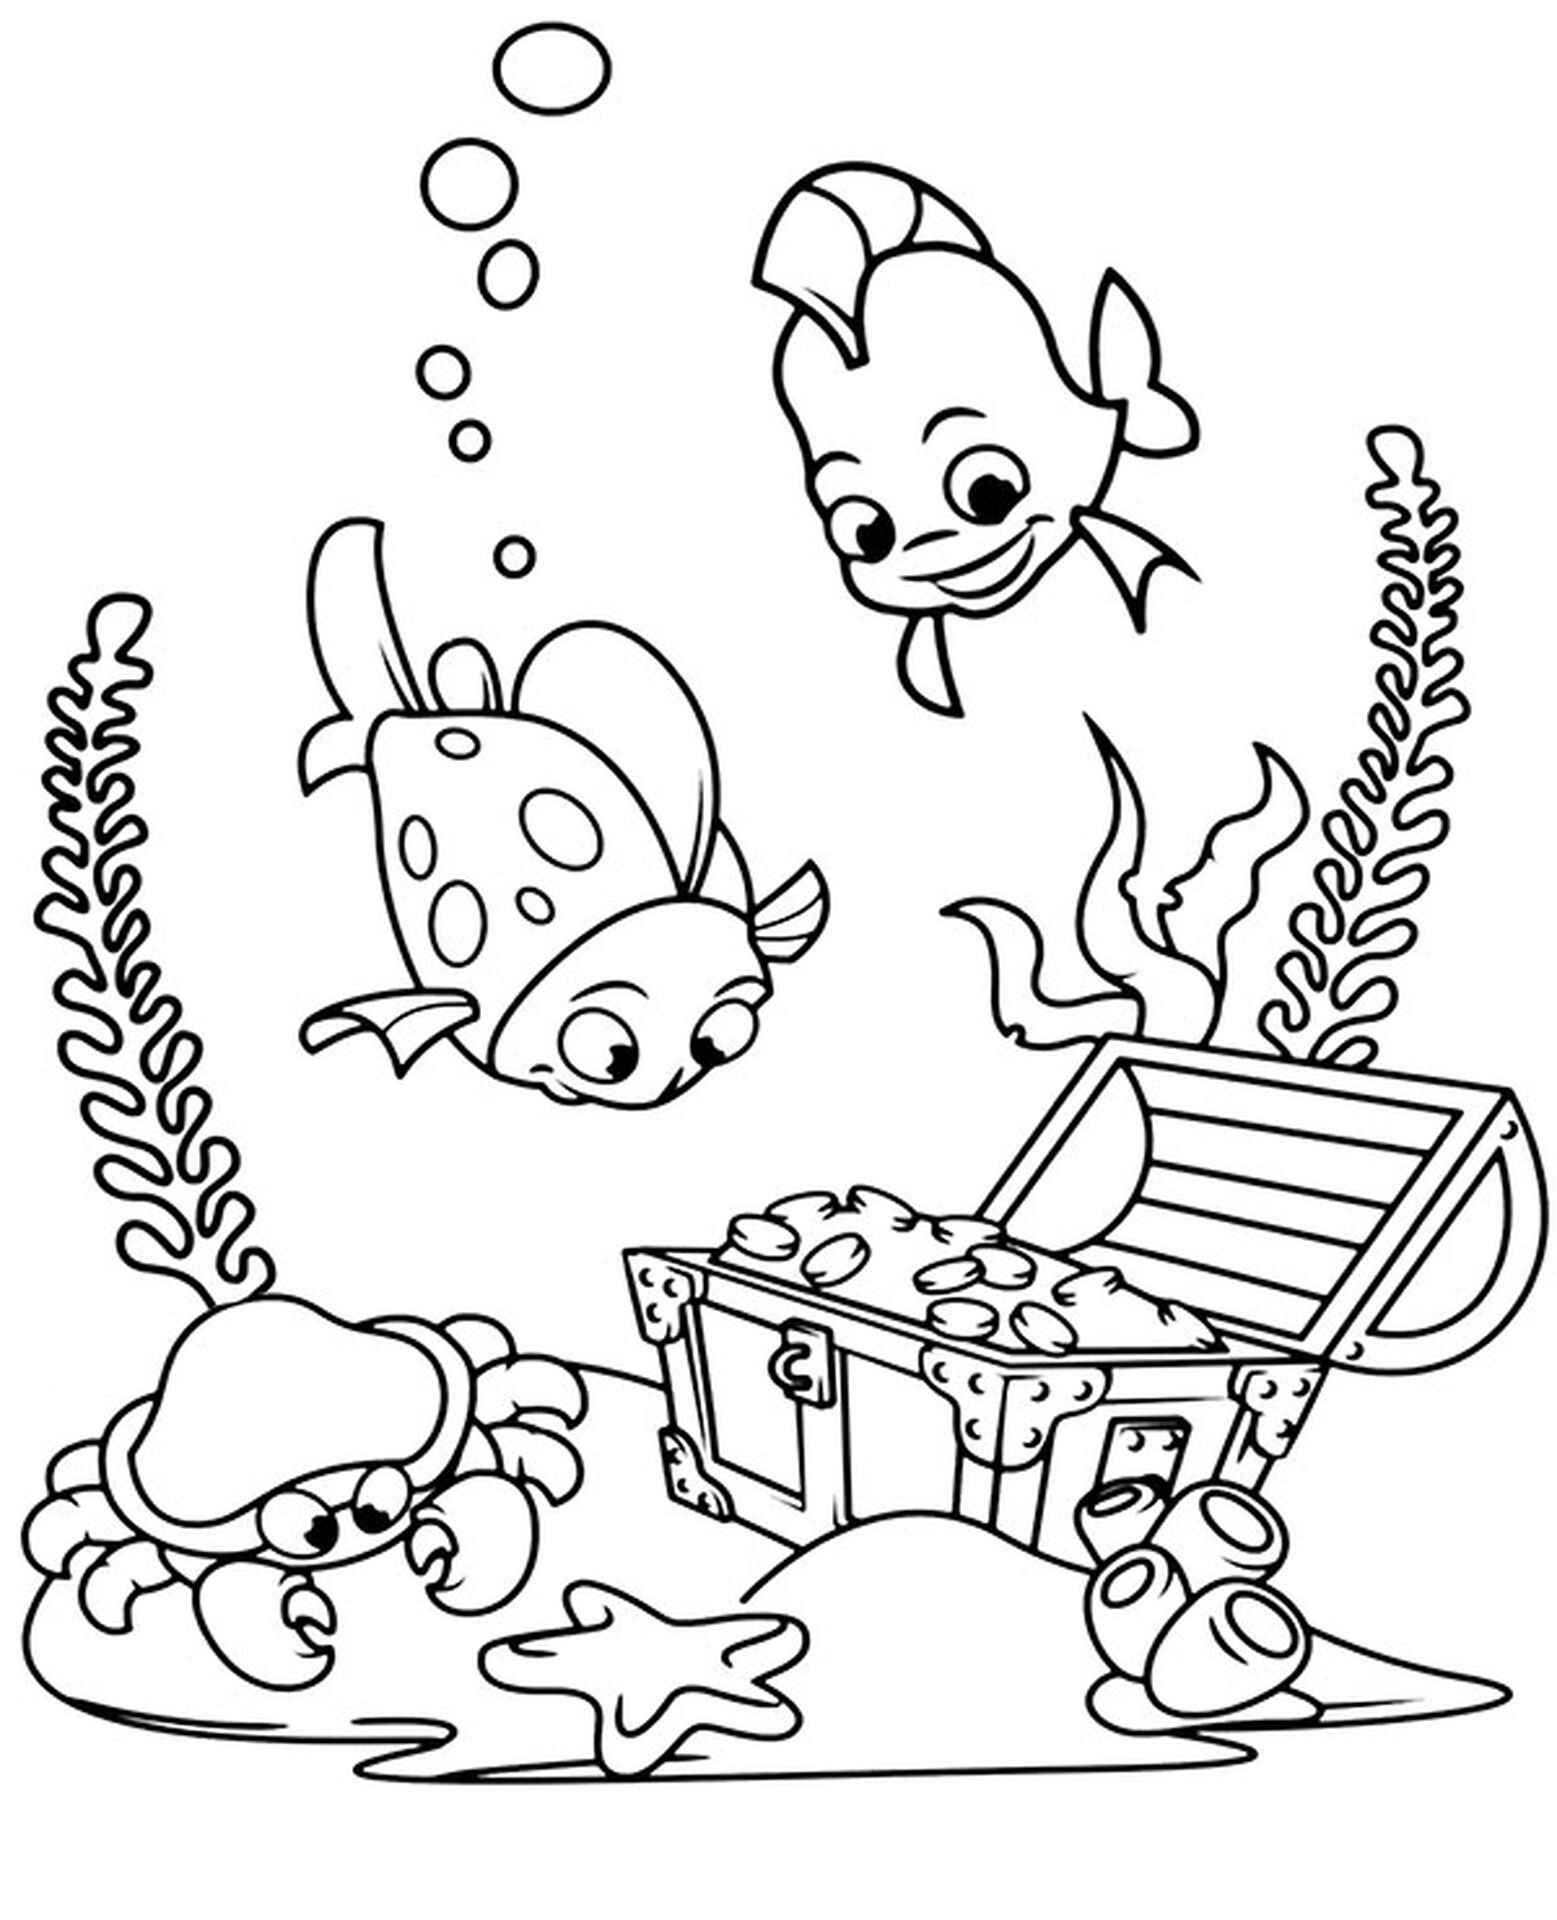 Sunken Treasure Coloring Picture